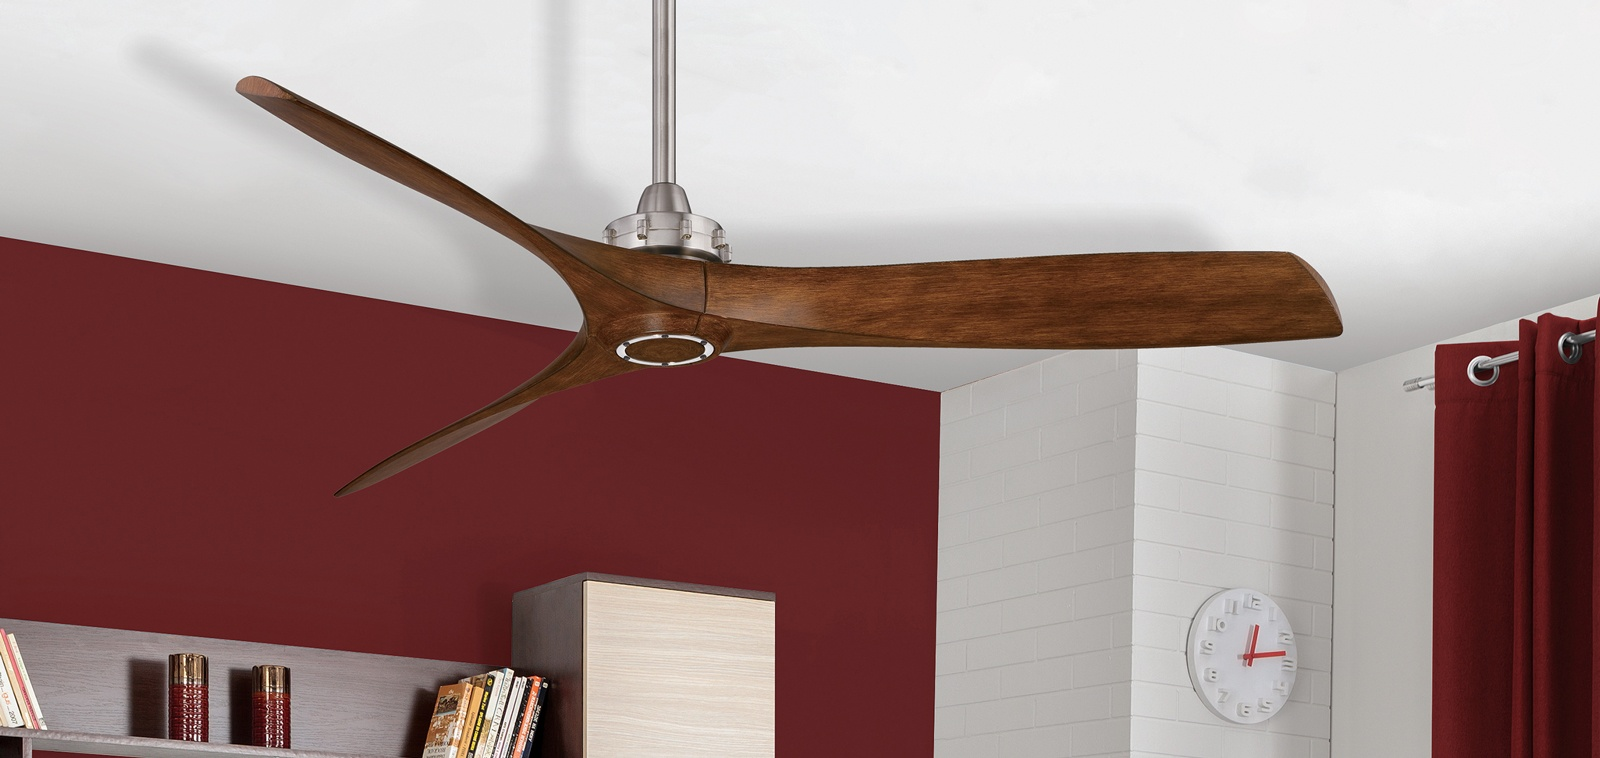 Ceiling fans are both aesthetically pleasing and an energy efficient for moving air.